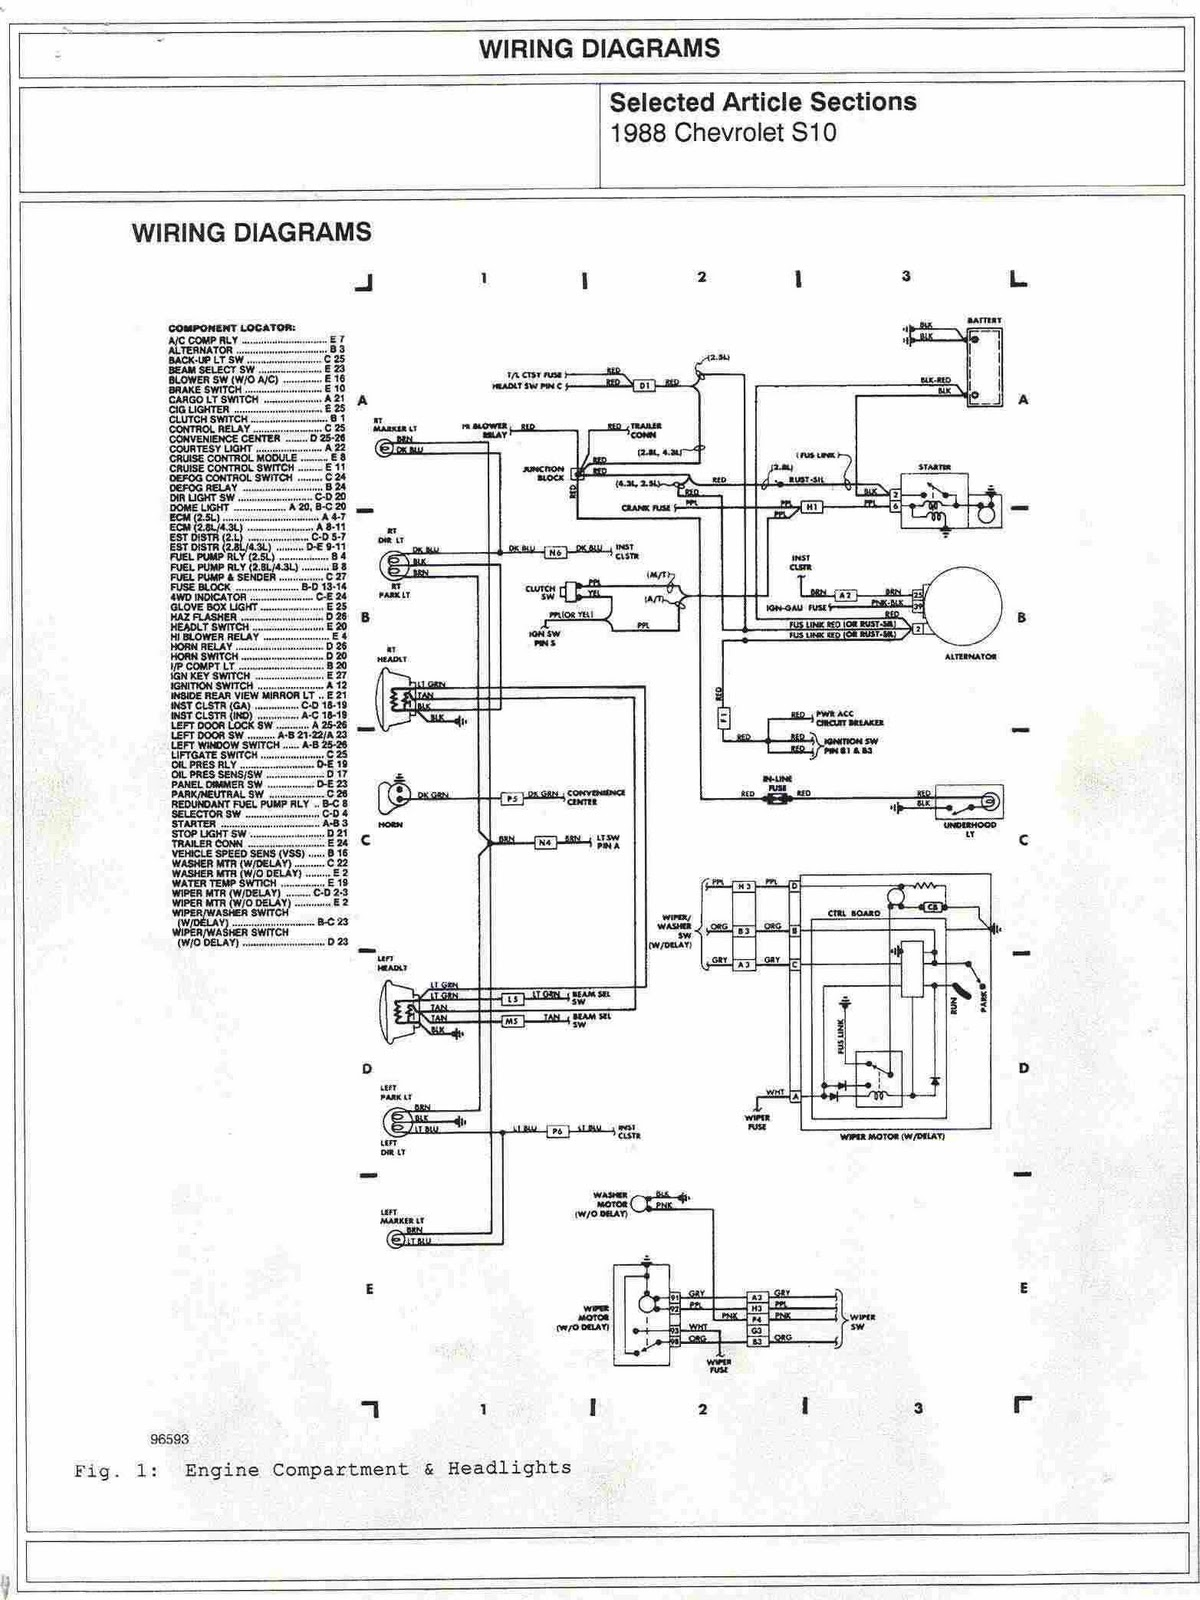 88 Toyota Pickup Tail Light Wiring Diagram Trusted 1989 Chevy Truck 87 Headlight U2022 For Free 1984